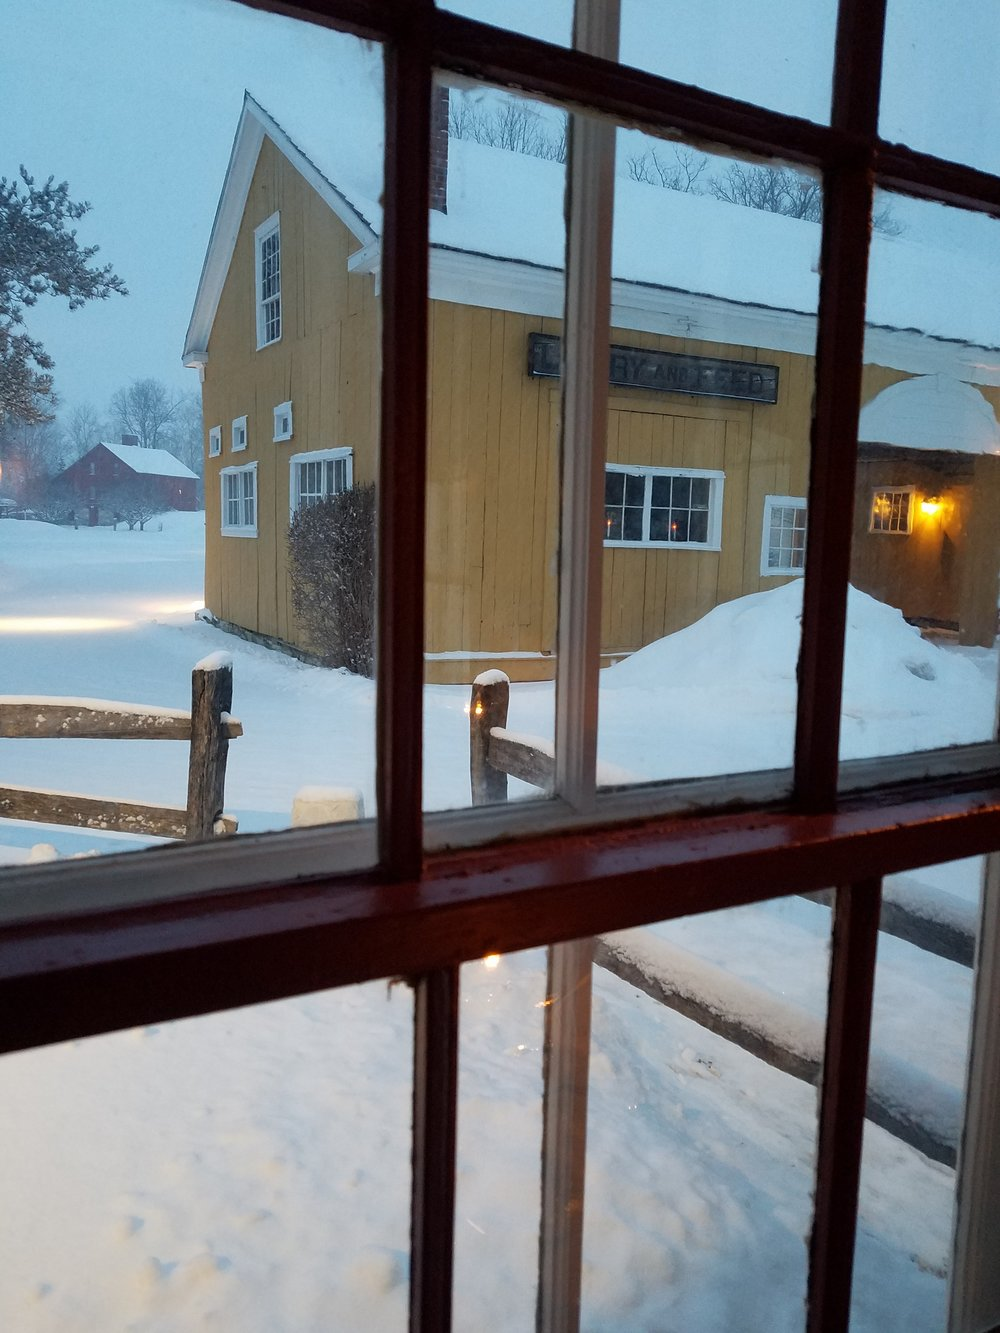 Table 32 lookin out window toward barn with snow.jpg